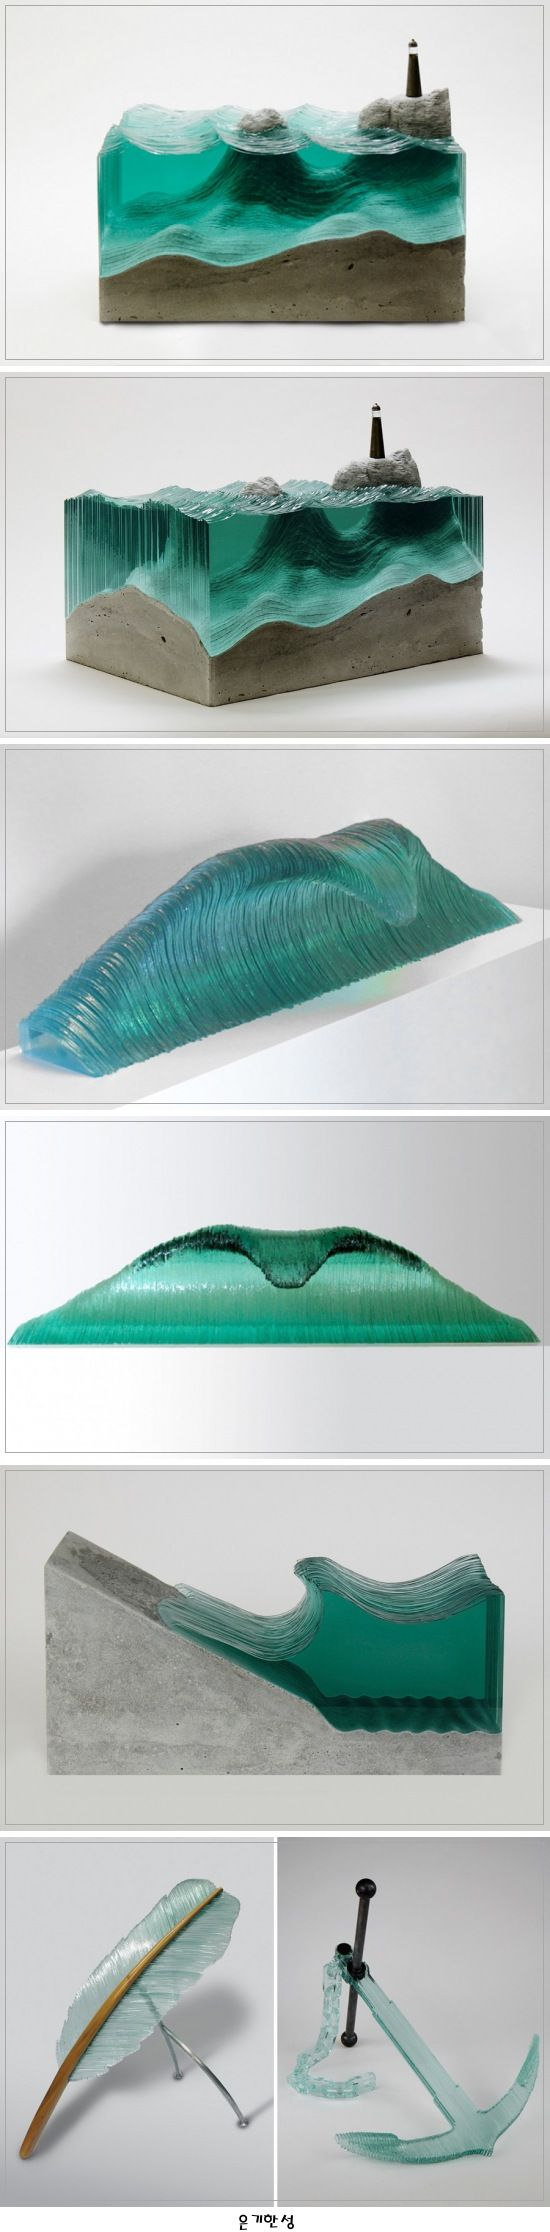 These glass sculptures are SO clever and beautiful!